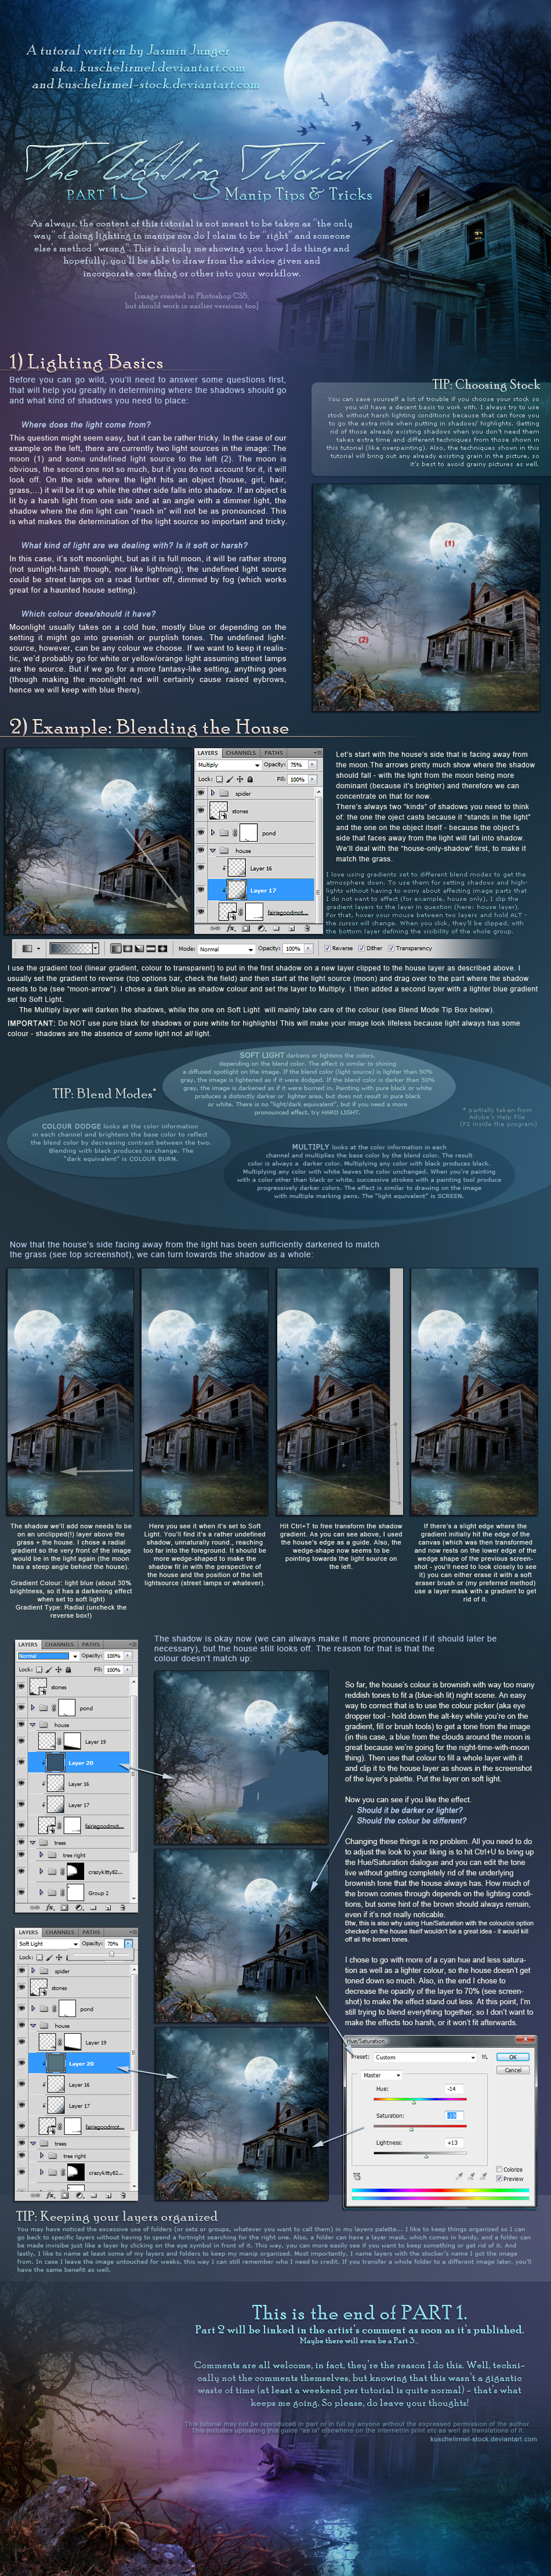 The lighting tutorial part 1 by kuschelirmel stock on deviantart the lighting tutorial part 1 by kuschelirmel stock baditri Image collections